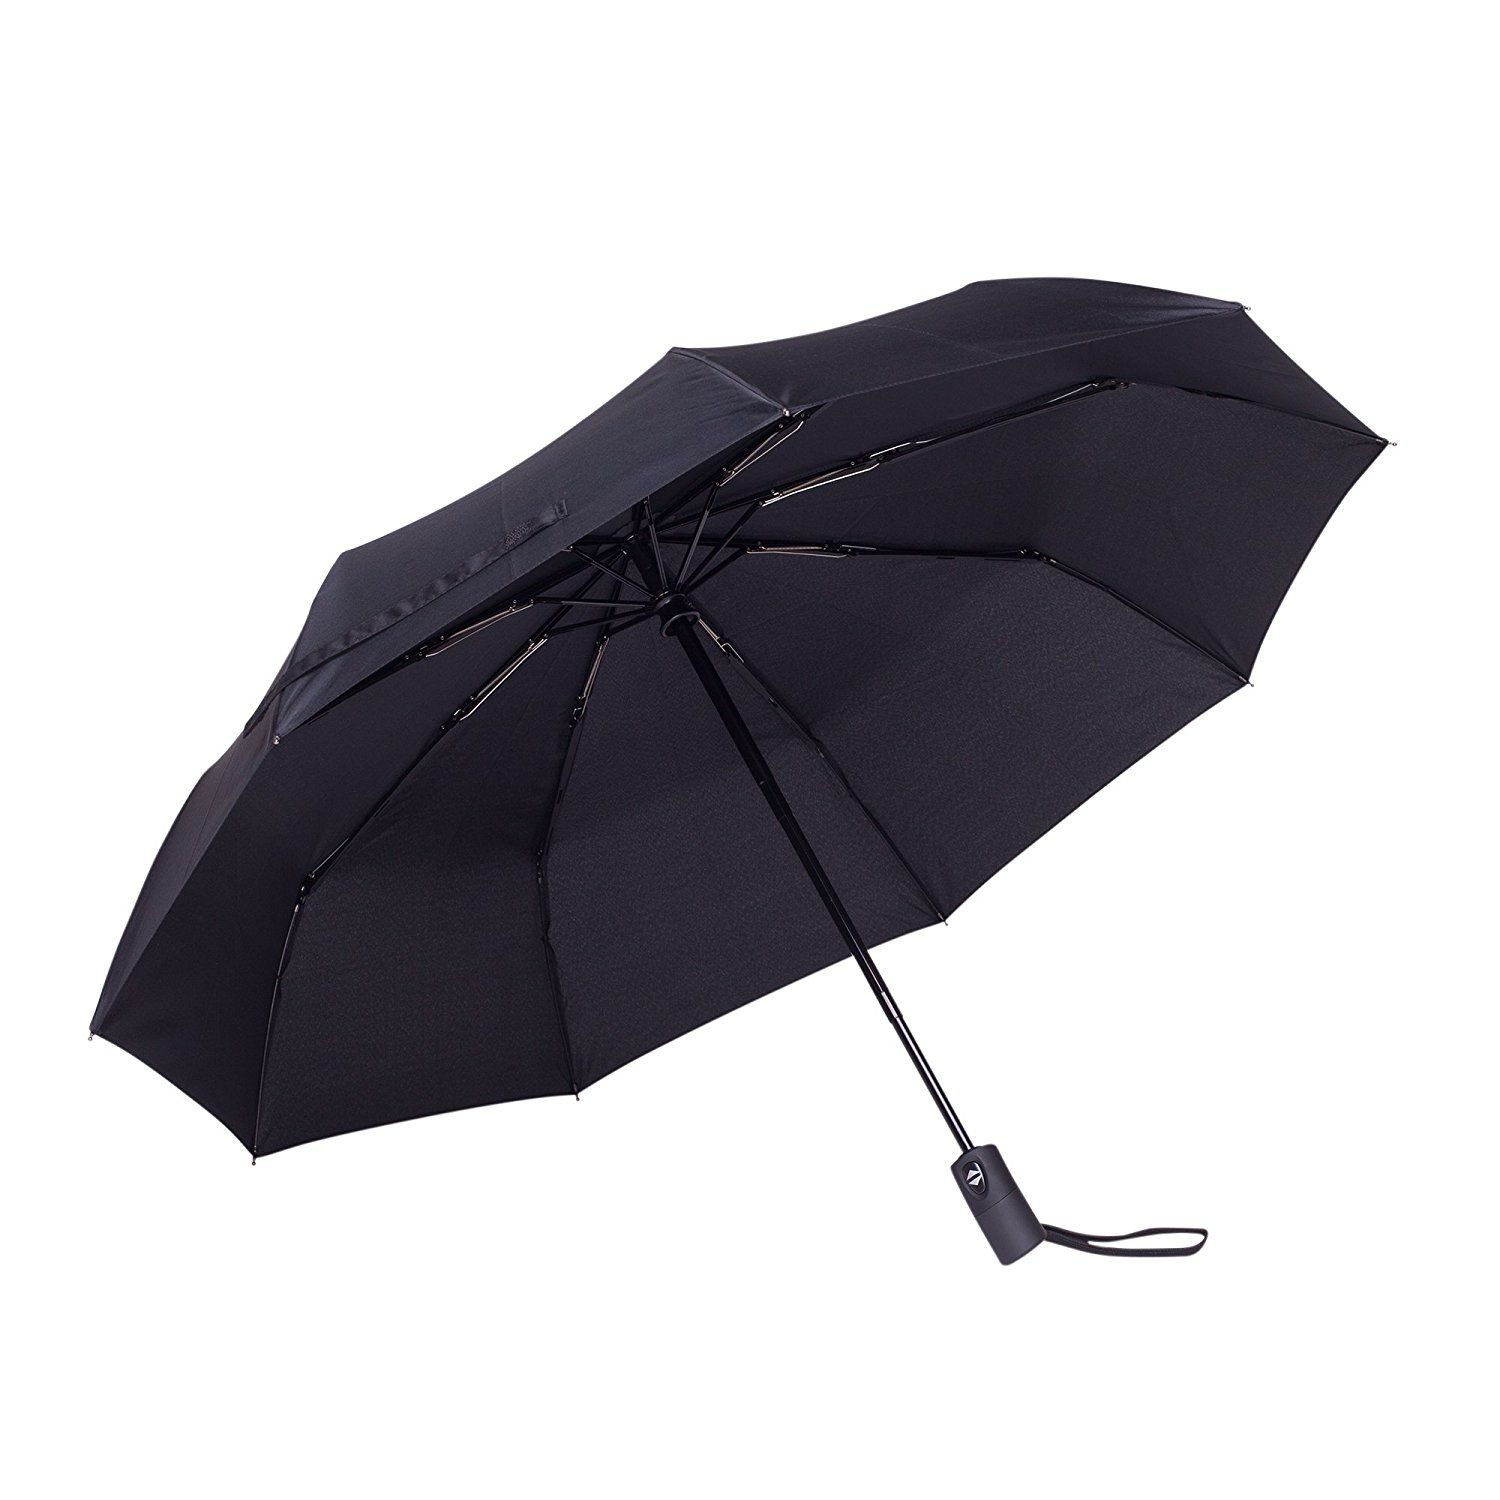 Rain Mate Compact Travel Umbrella